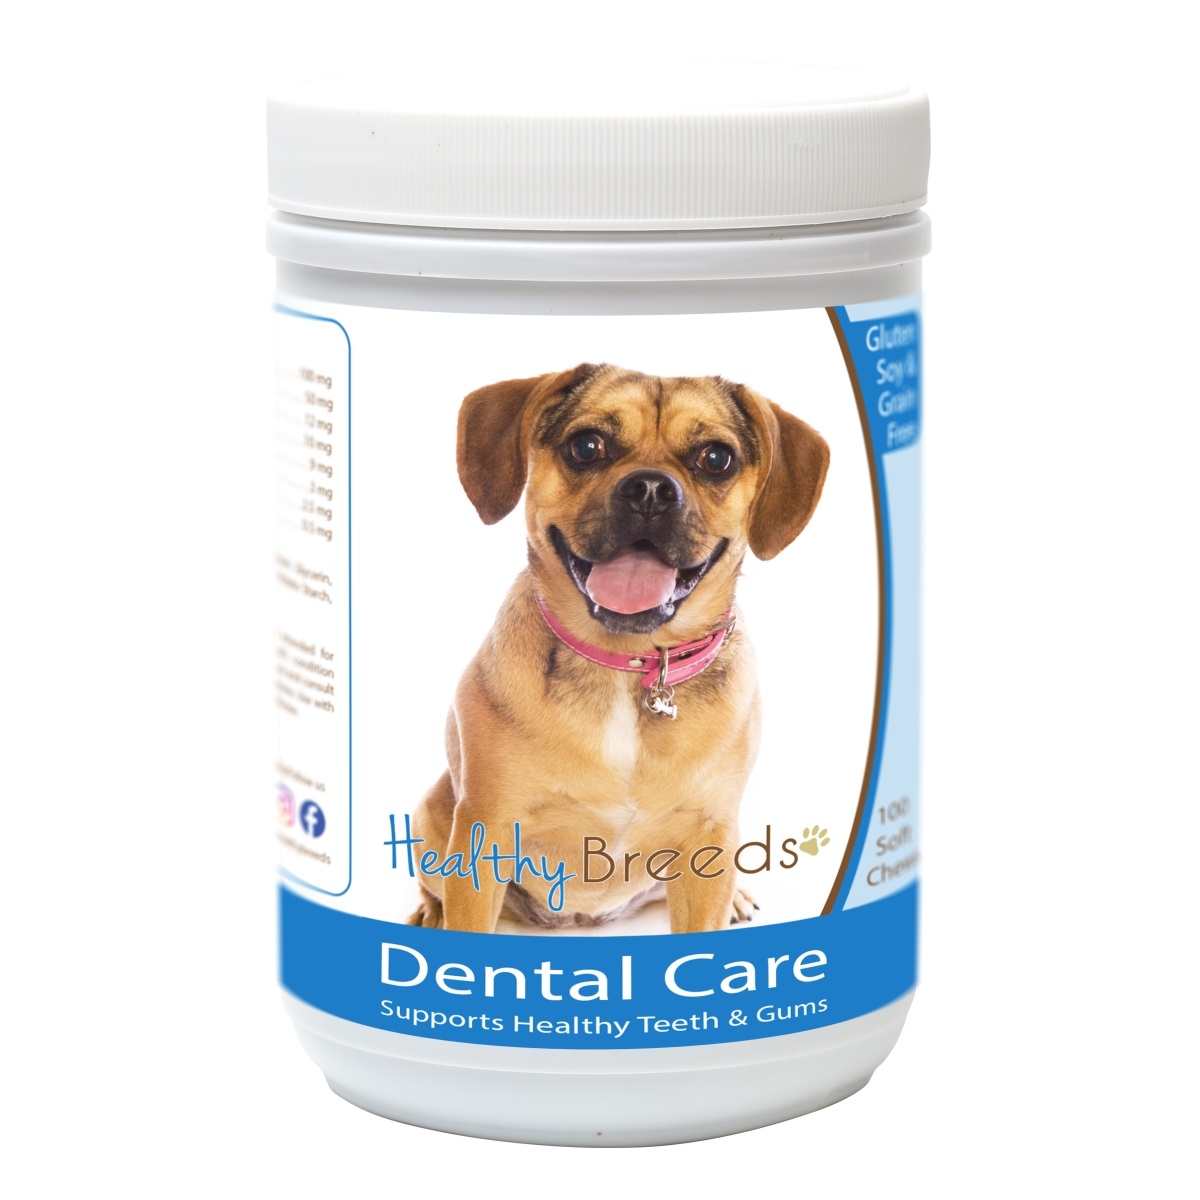 Healthy Breeds 840235162551 Puggle Breath Care Soft Chews for Dogs - 60 Count